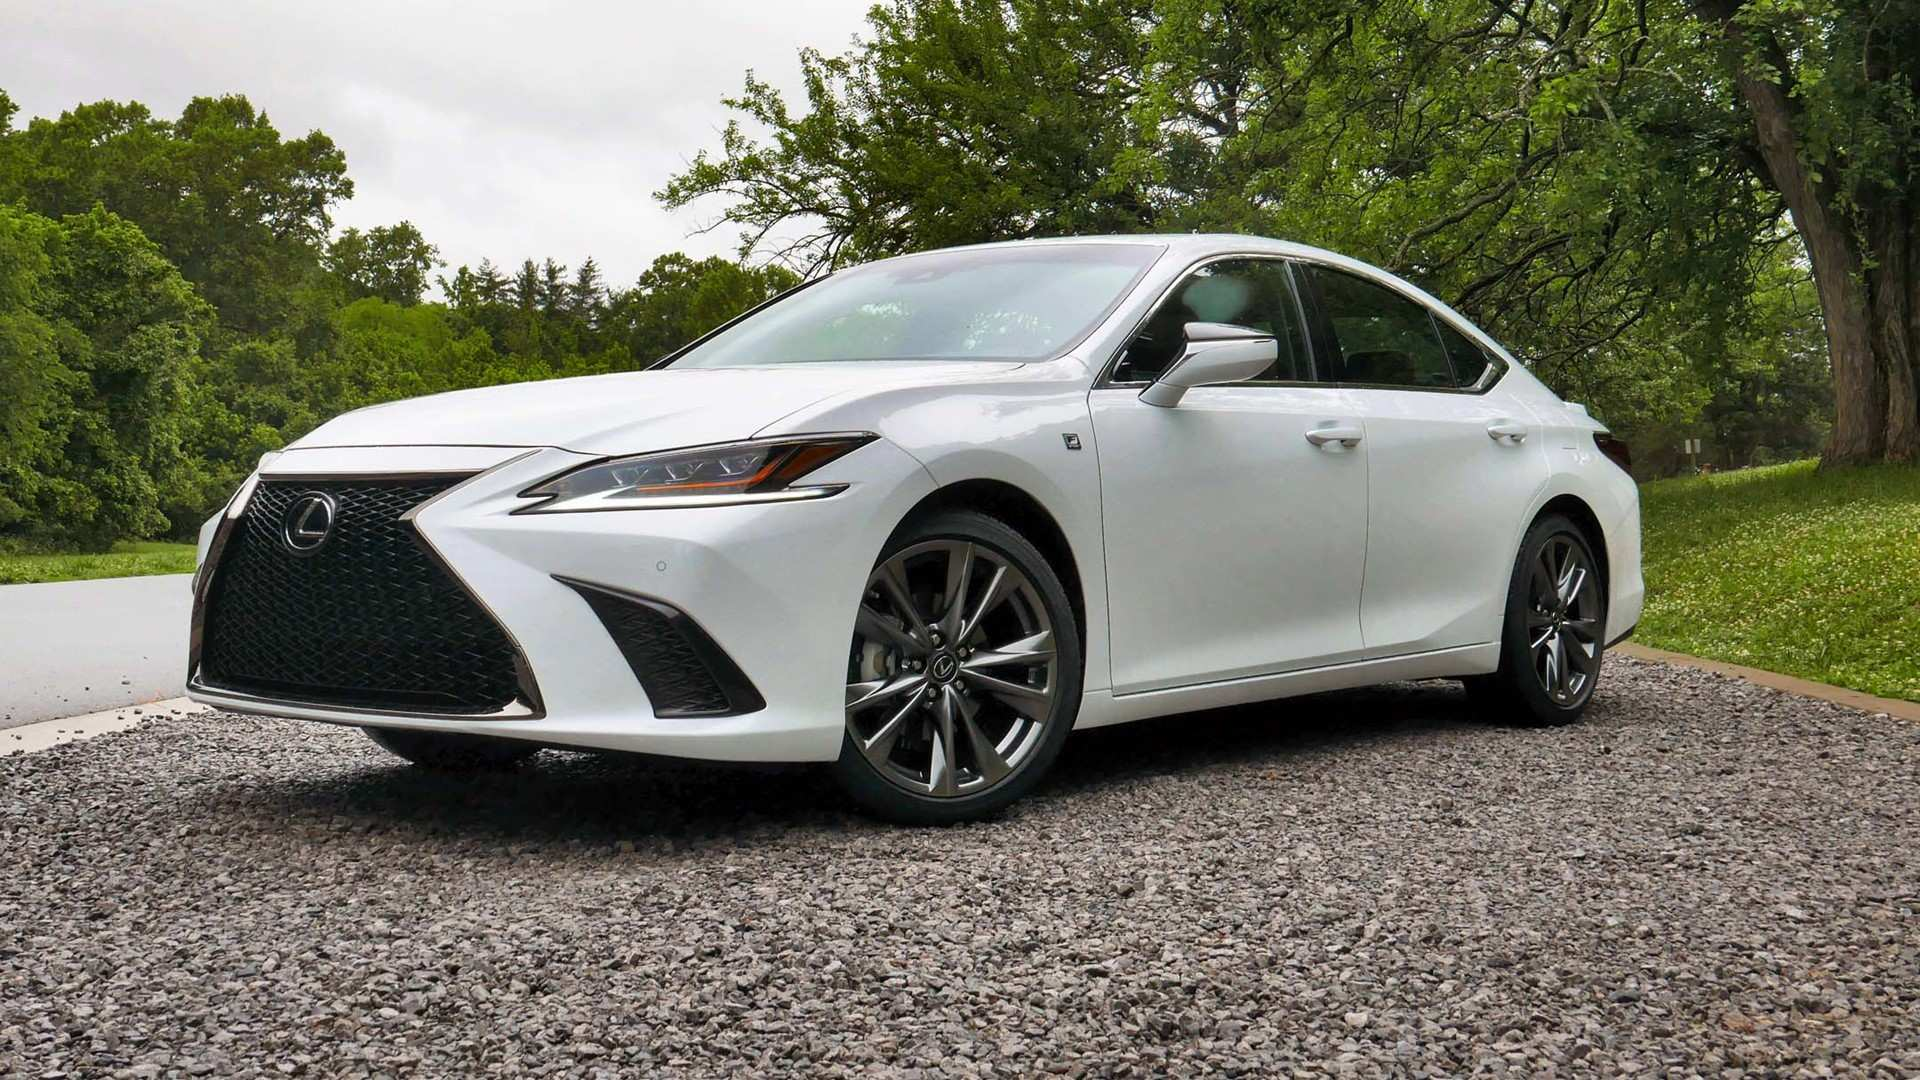 23 Best Review 2019 Lexus Availability 2 Engine by 2019 Lexus Availability 2